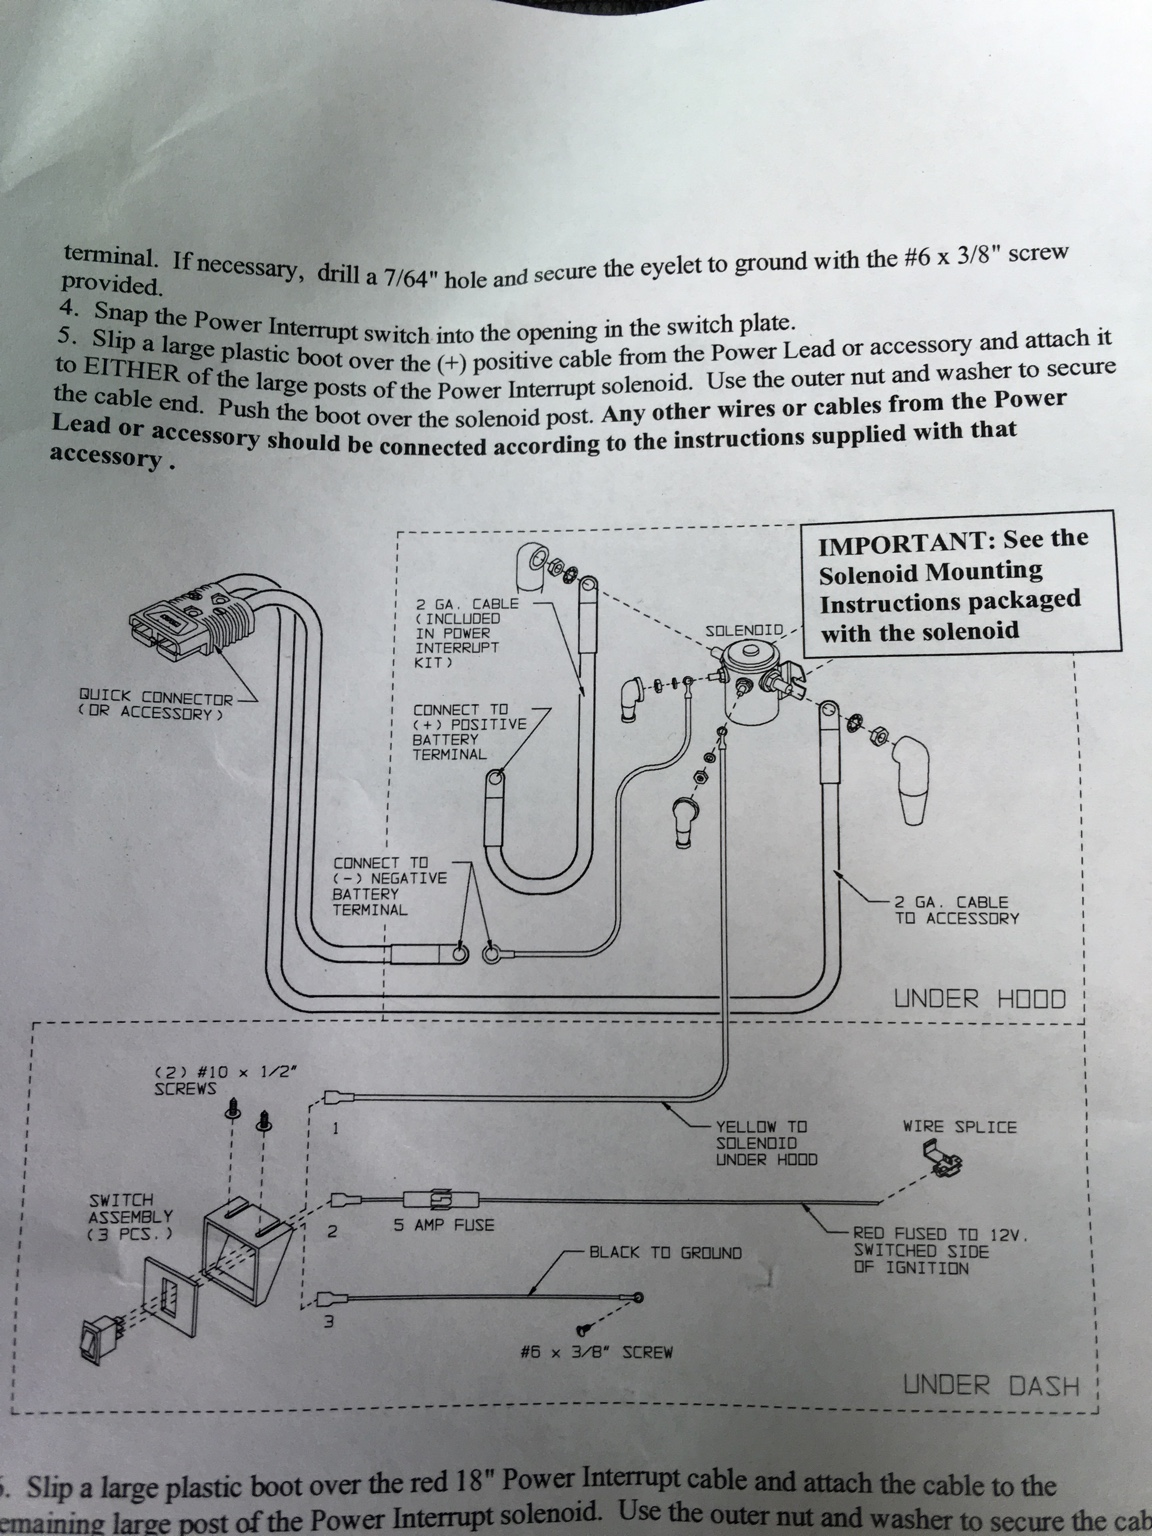 advice for wiring a warn quick connect winch harness toyota rh toyota 4runner org Wire Testing Quick Connects Wire Testing Quick Connects